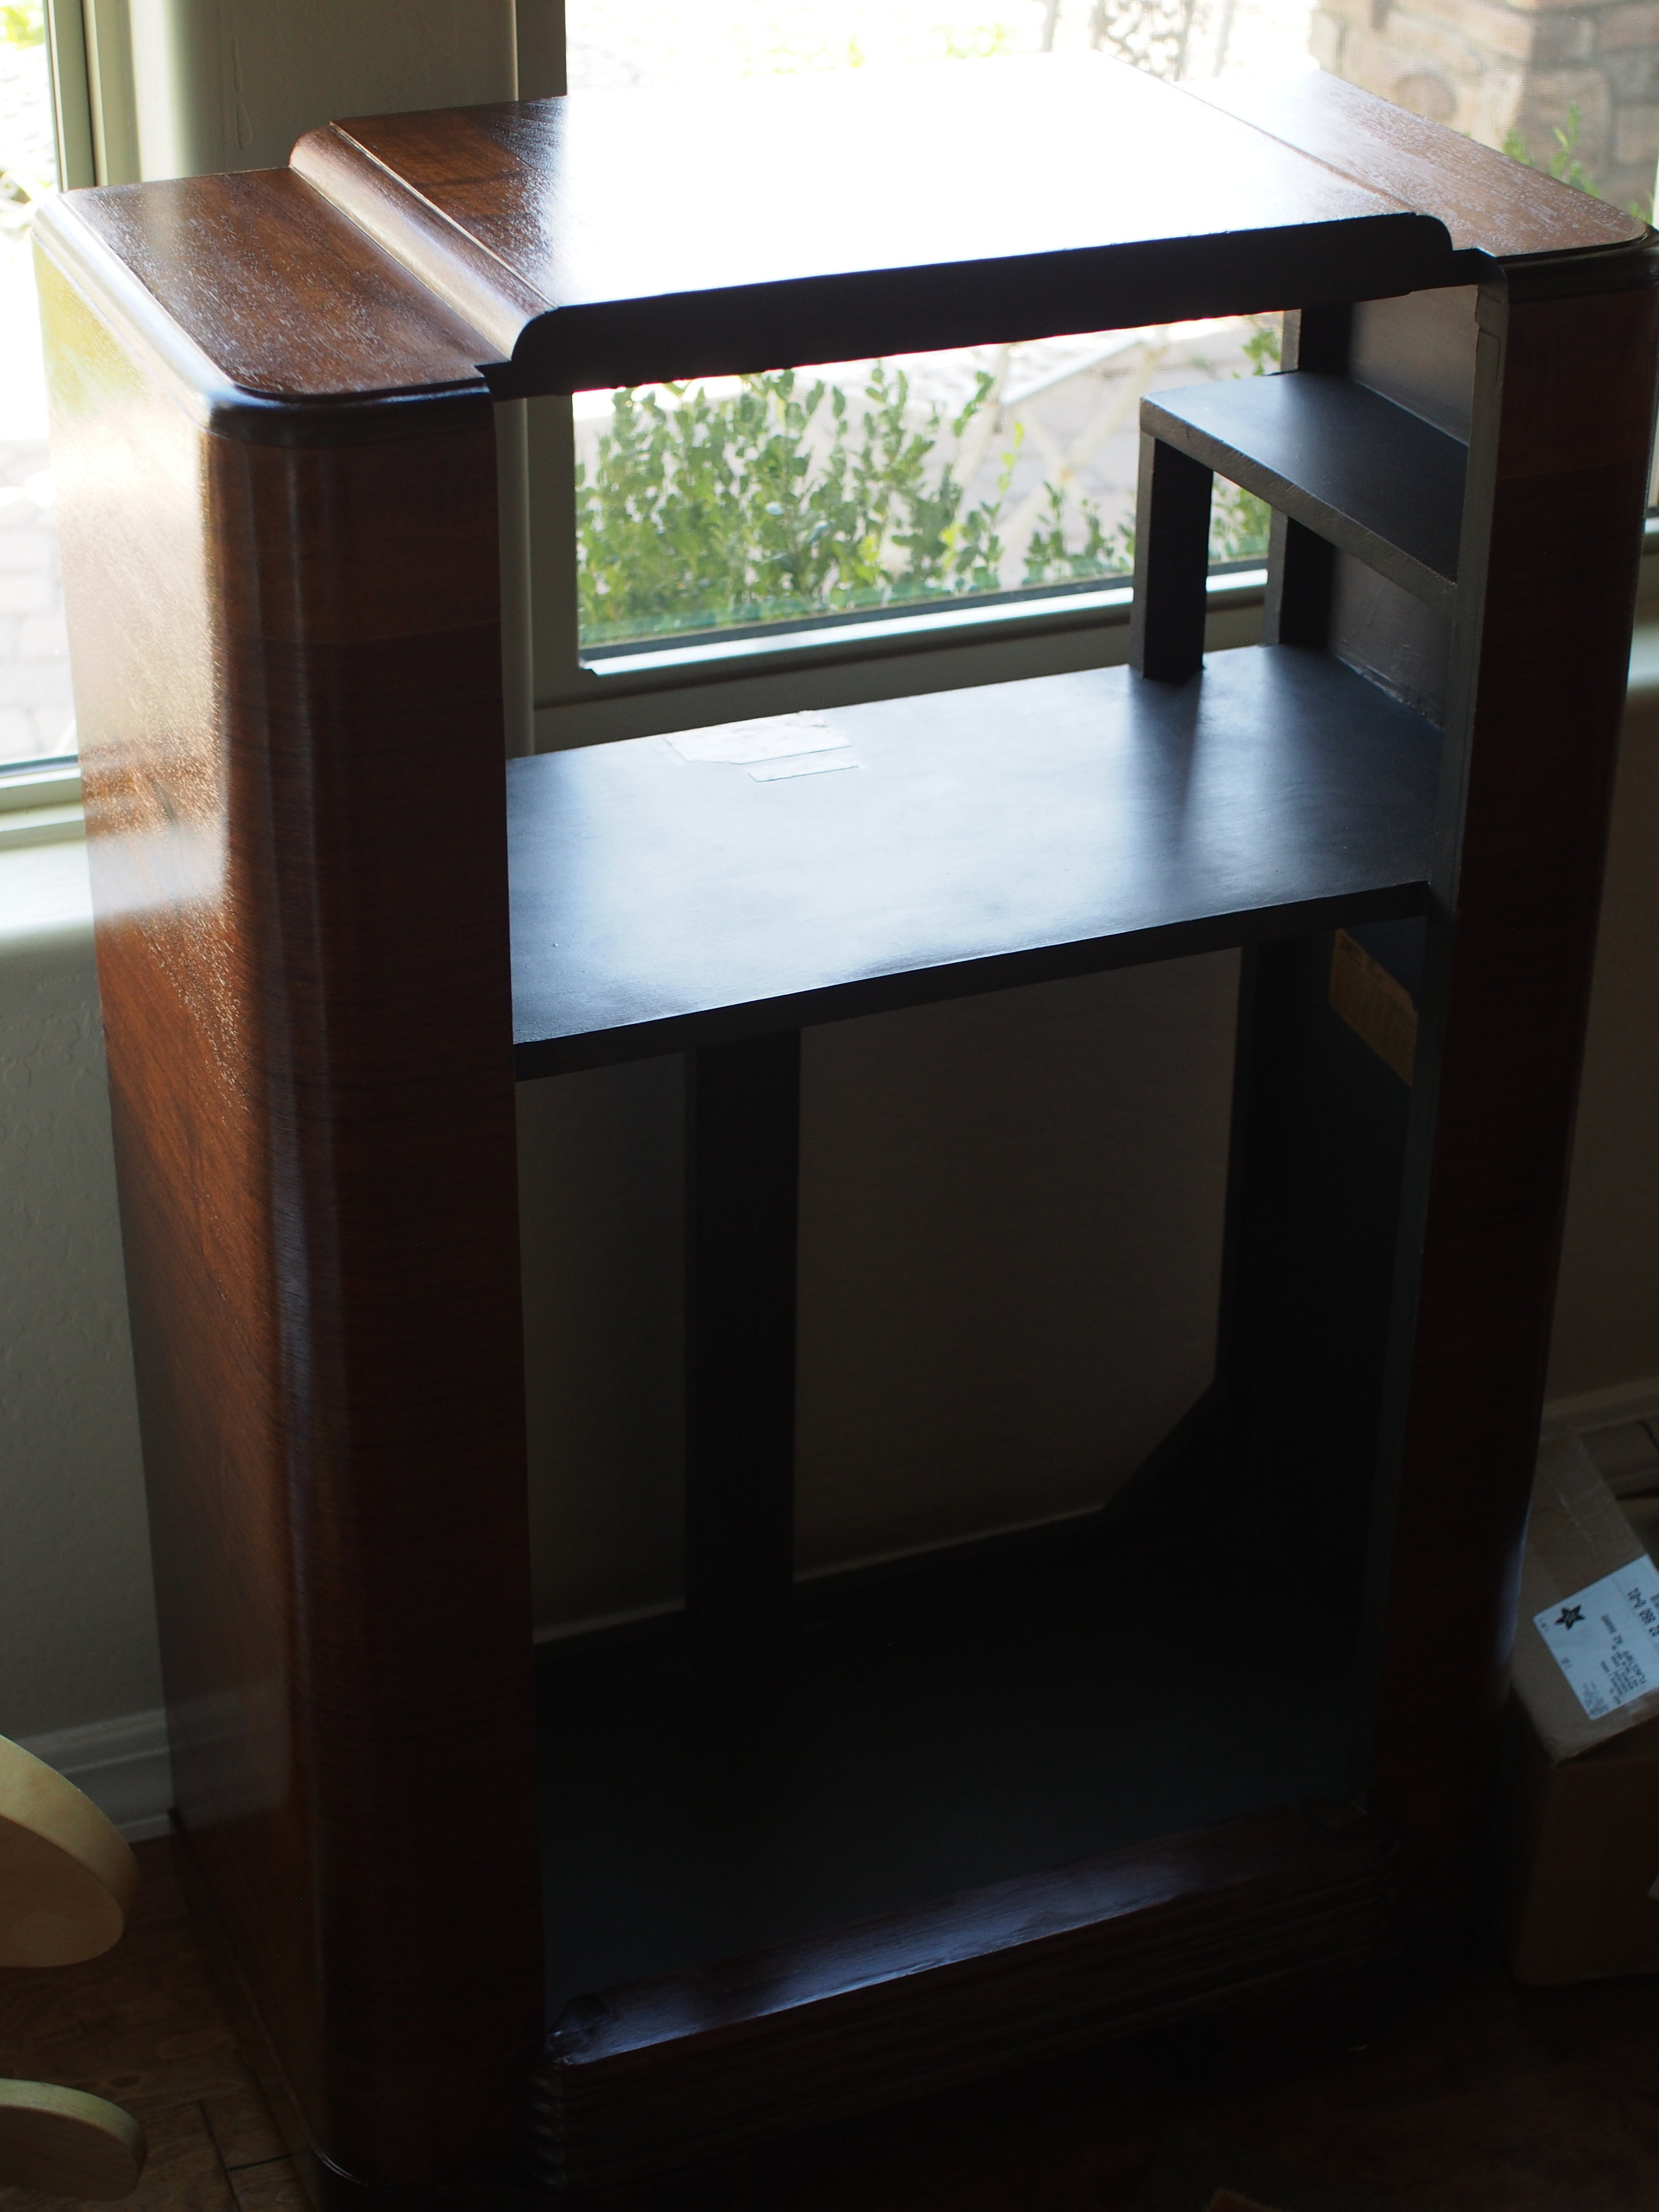 The cabinet in the final room for better lighting